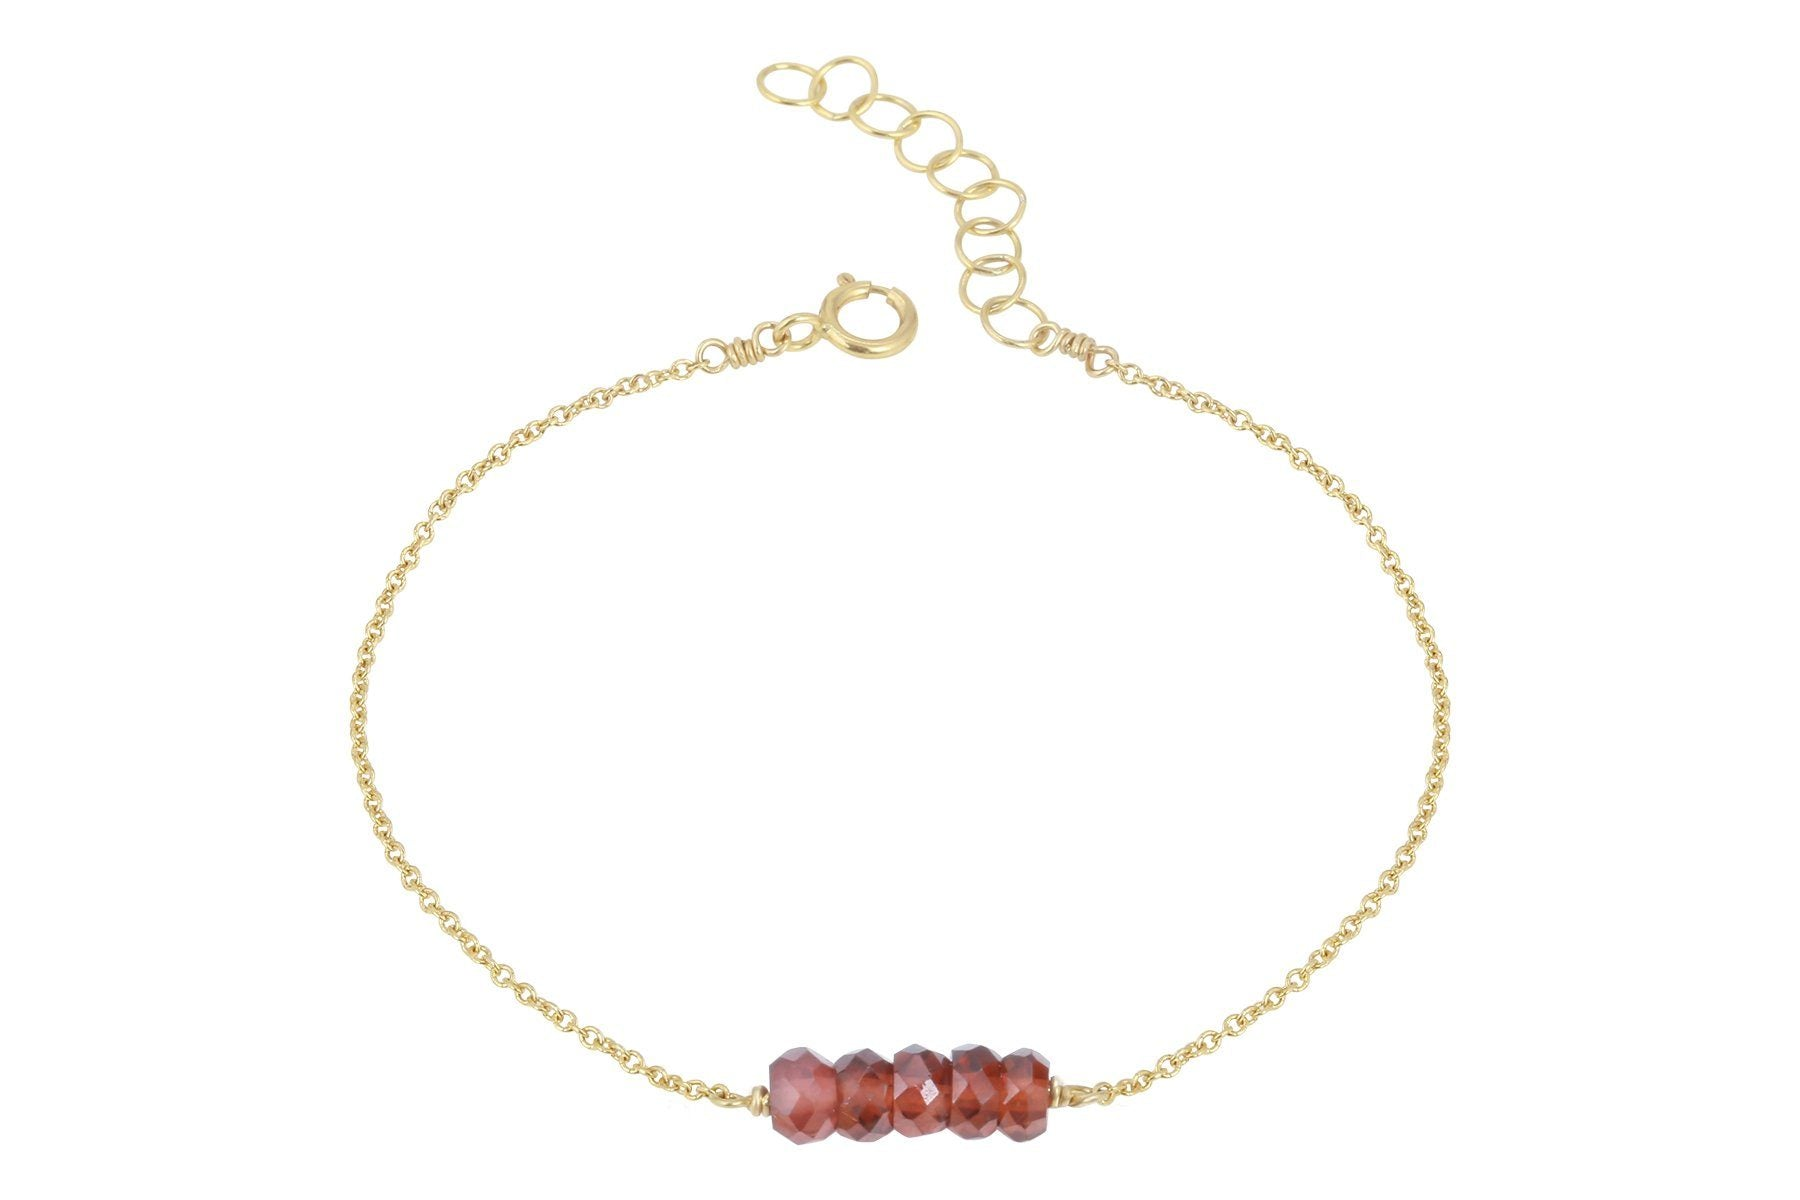 Elements- Garnet 5 stone gold filled adjustable chain bracelet - Amanda K Lockrow